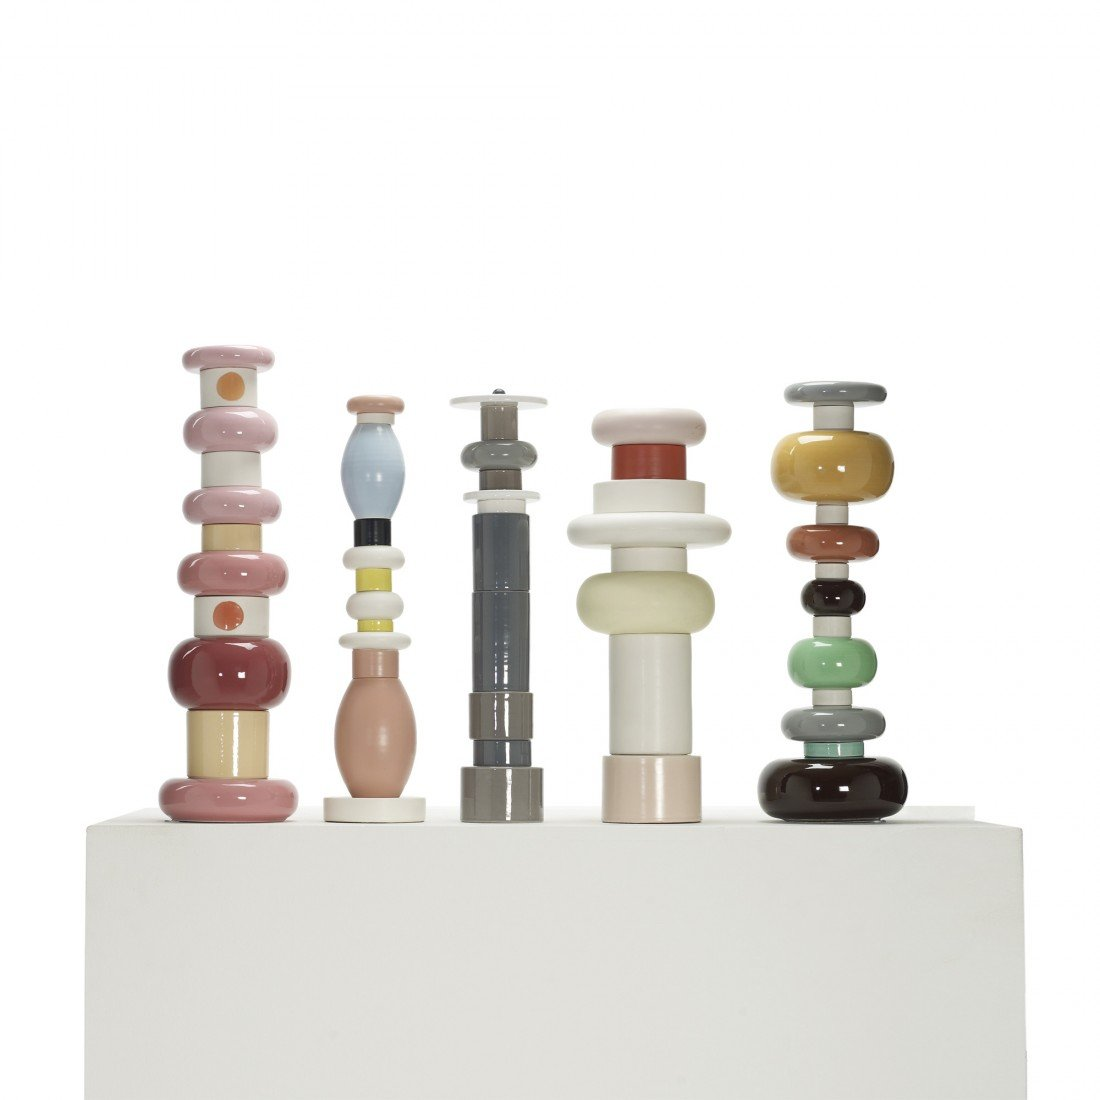 107: Ettore Sottsass totems, set of five